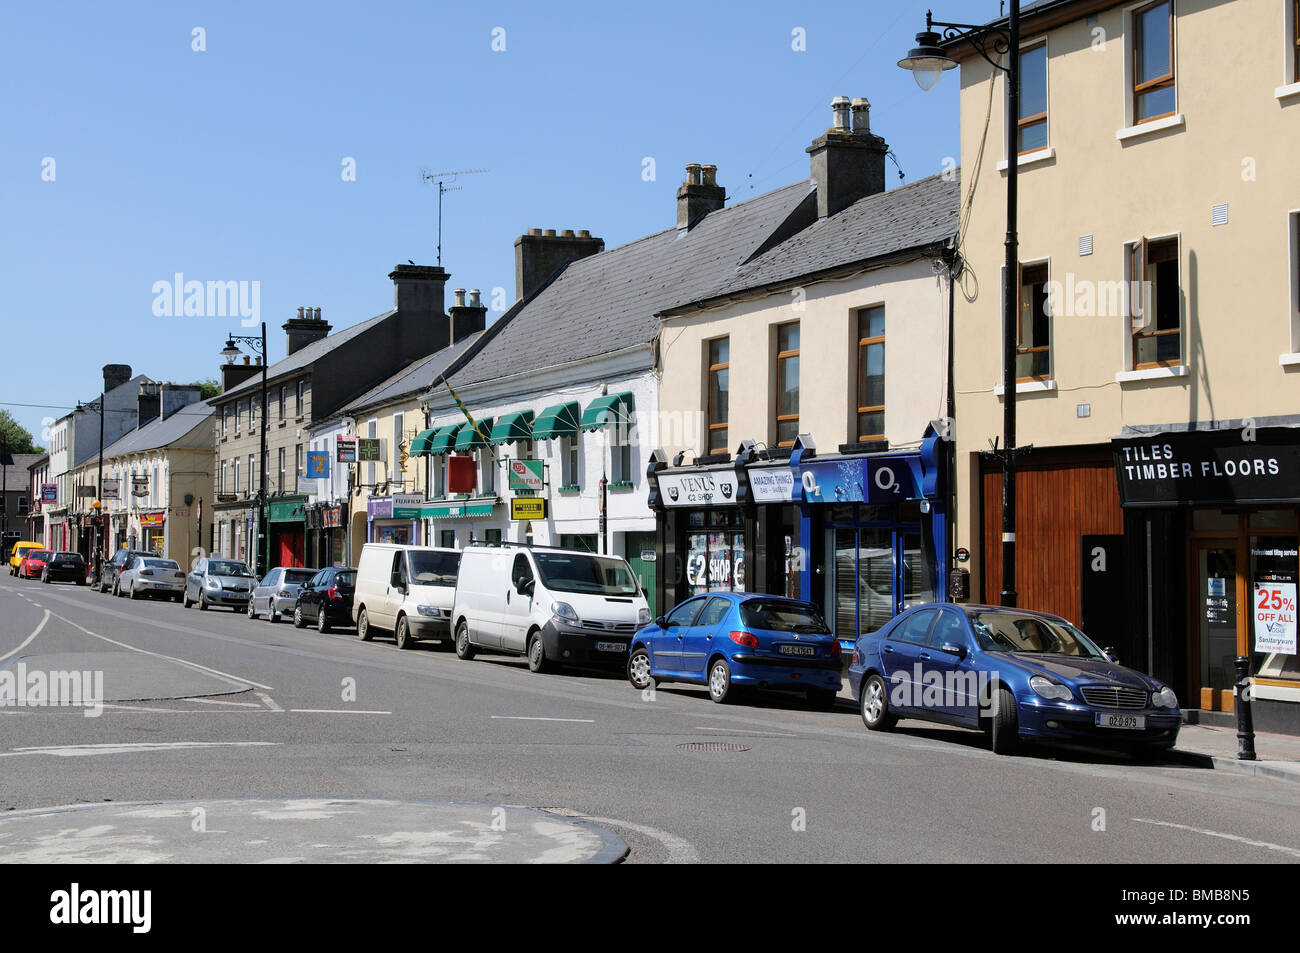 Market Street in the historic town of Trim County Meath Ireland. The town is situated northwest of Dublin - Stock Image